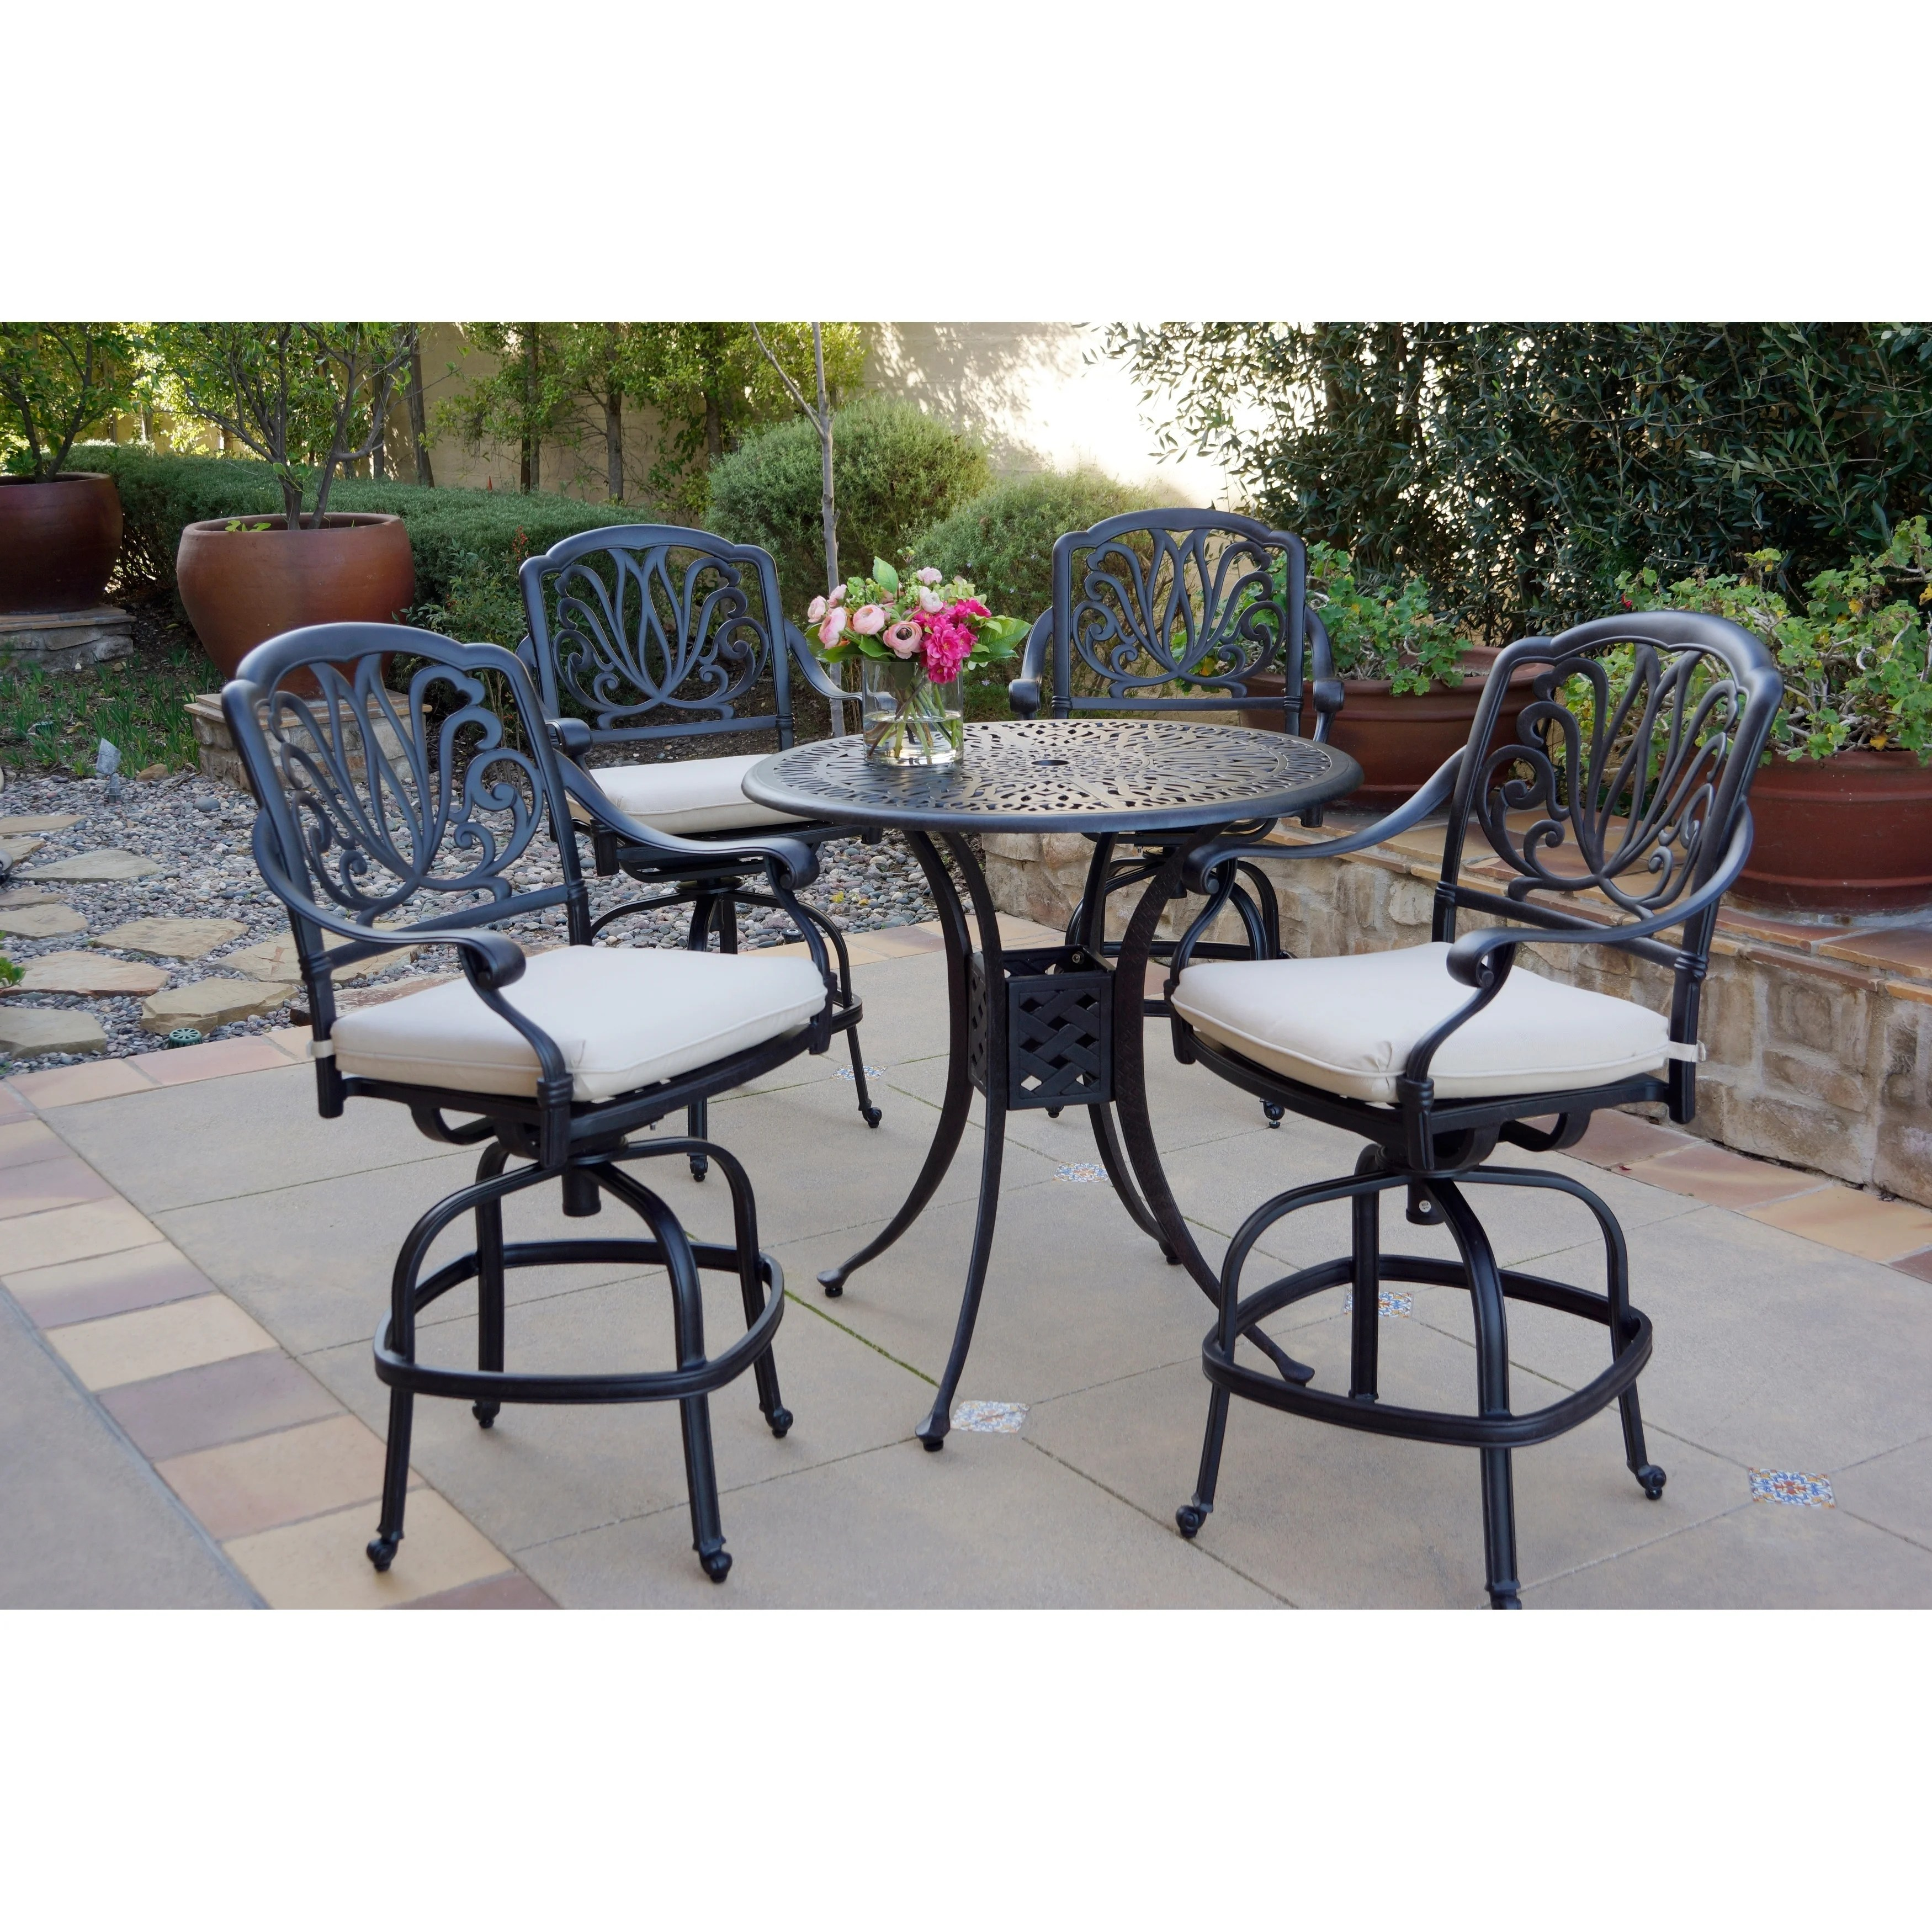 5 Piece Patio Bar Set 36 Inch Round Counter Height Bar Table Overstock 27326480